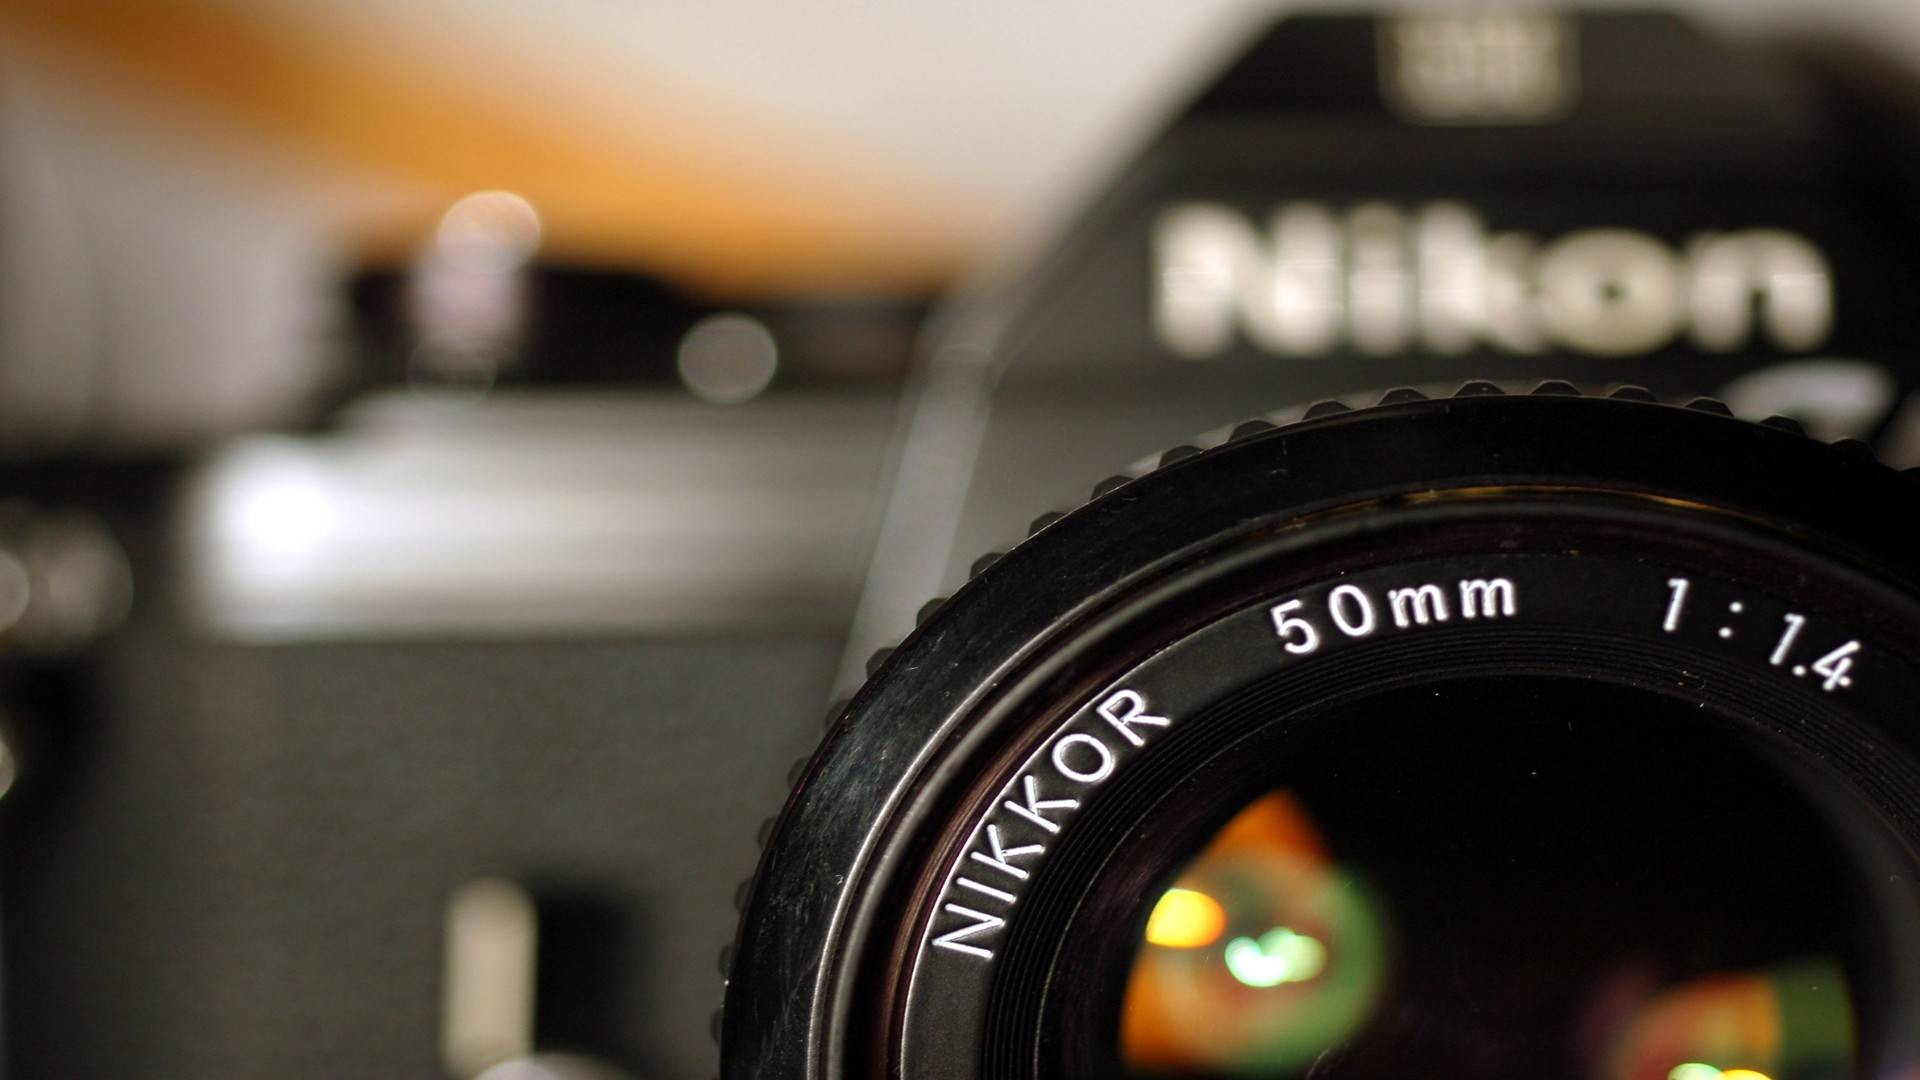 Nikon Wallpaper HD 73 Images